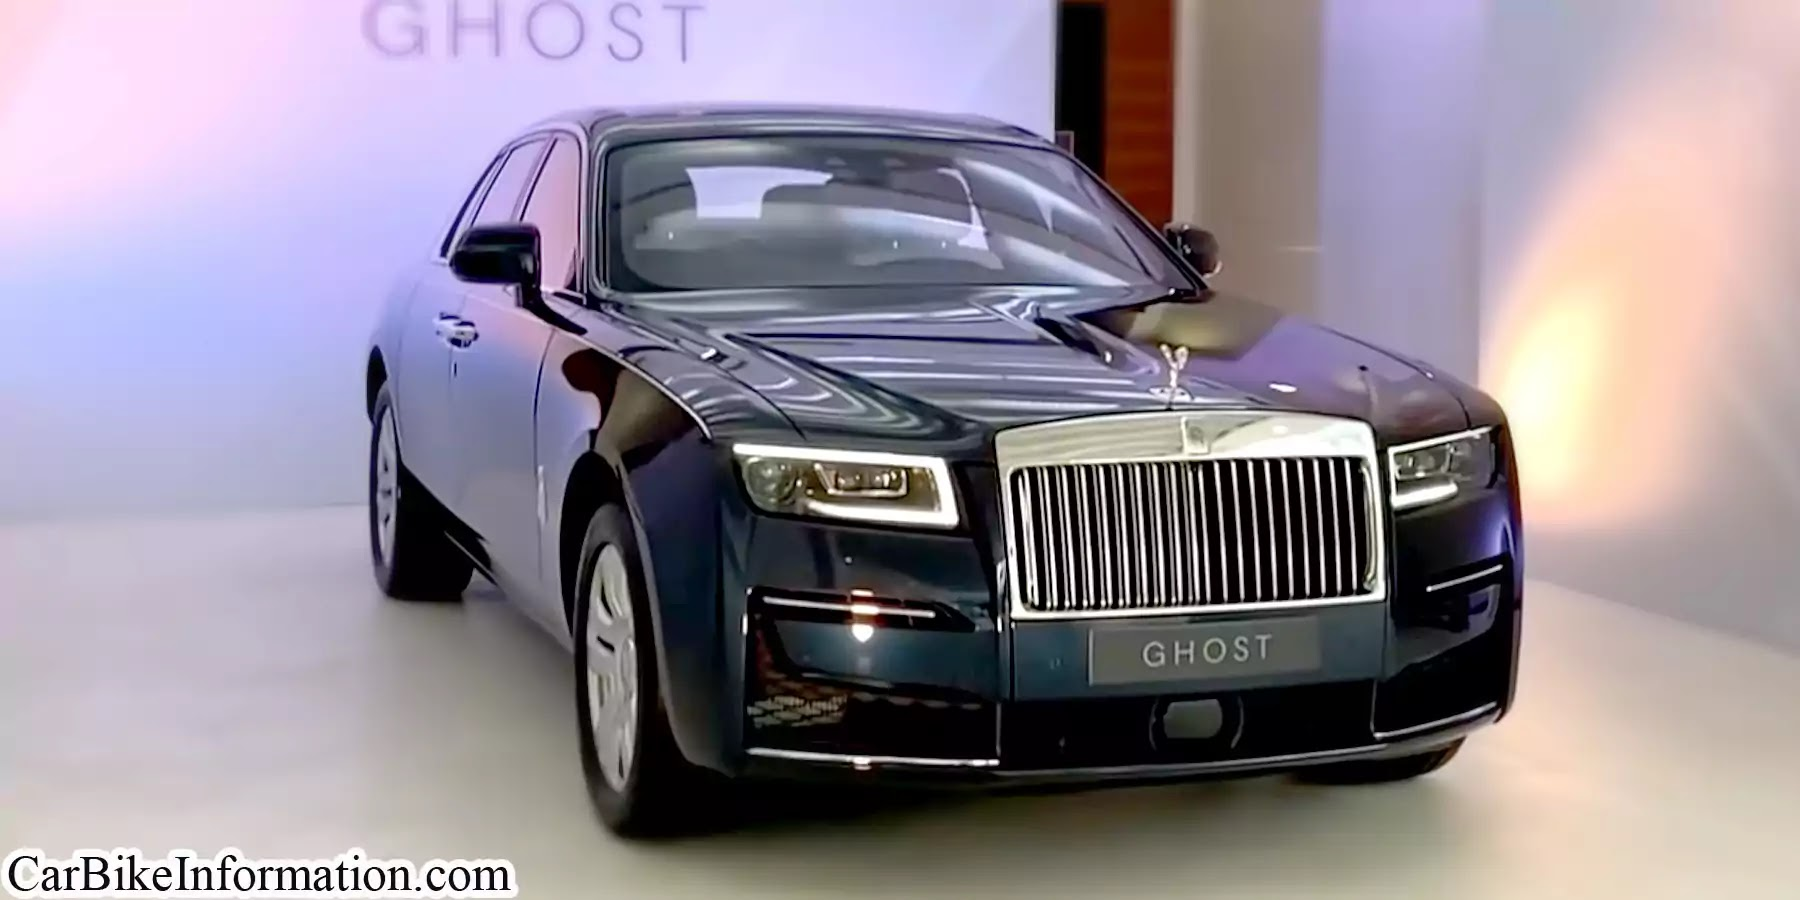 Rolls Royce Ghost Price Mileage Colour Varients Images Specification And Features